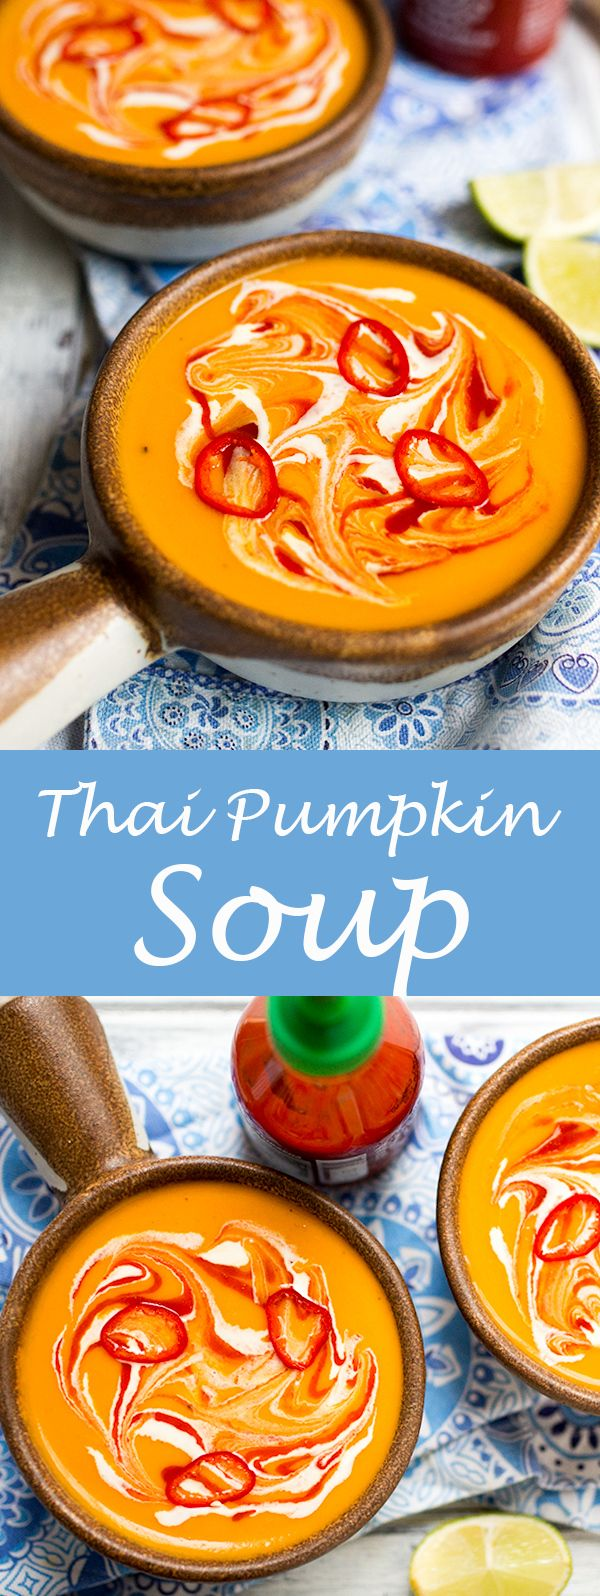 Thai Pumpkin Soup! A spicy, comforting SOUP - perfect for those cold evenings.